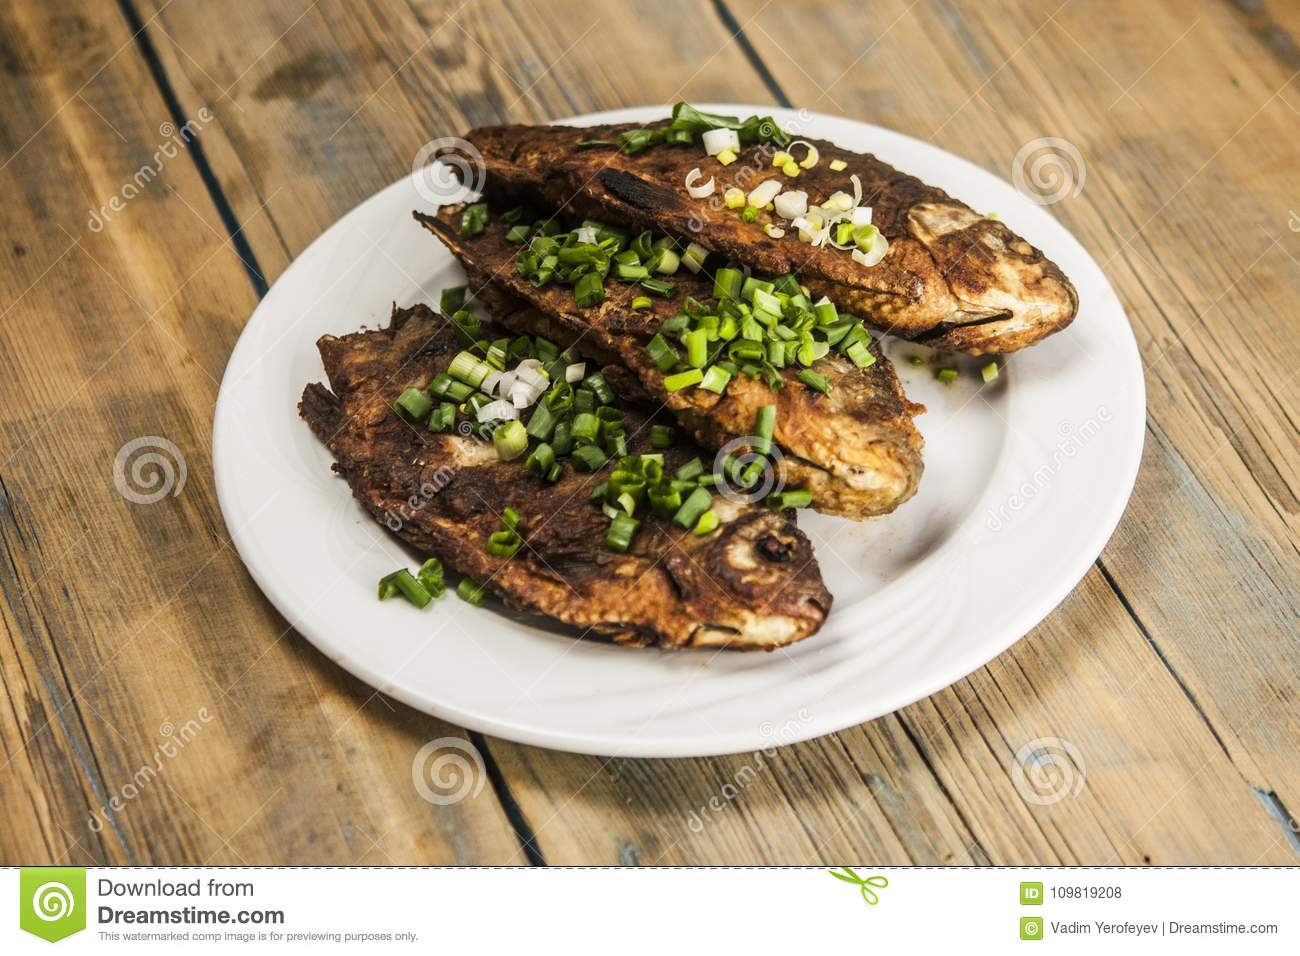 How to cook a crucian Carp roasted, baked, in sour cream - recipes, photos 45